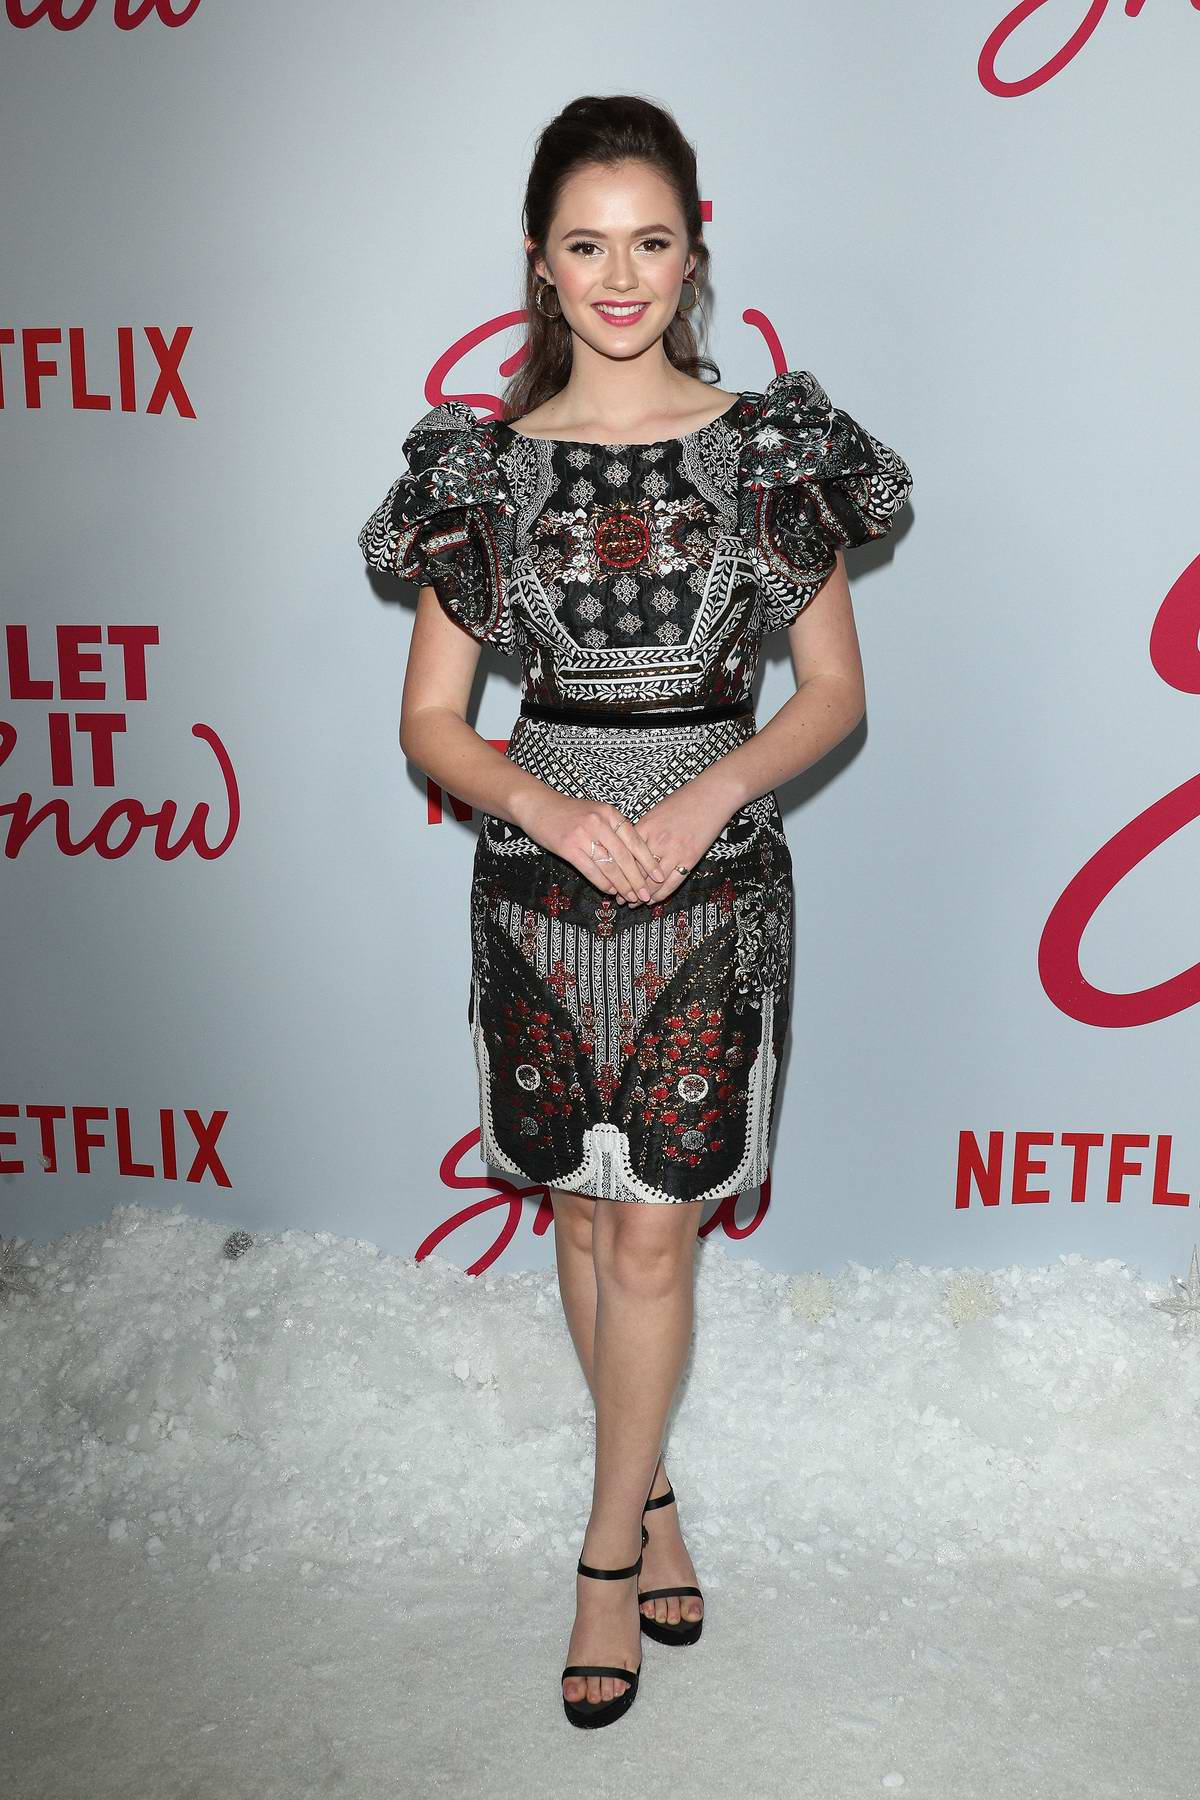 Olivia Sanabia attends the Premiere of Netflix's 'Let It Snow' in Los Angeles